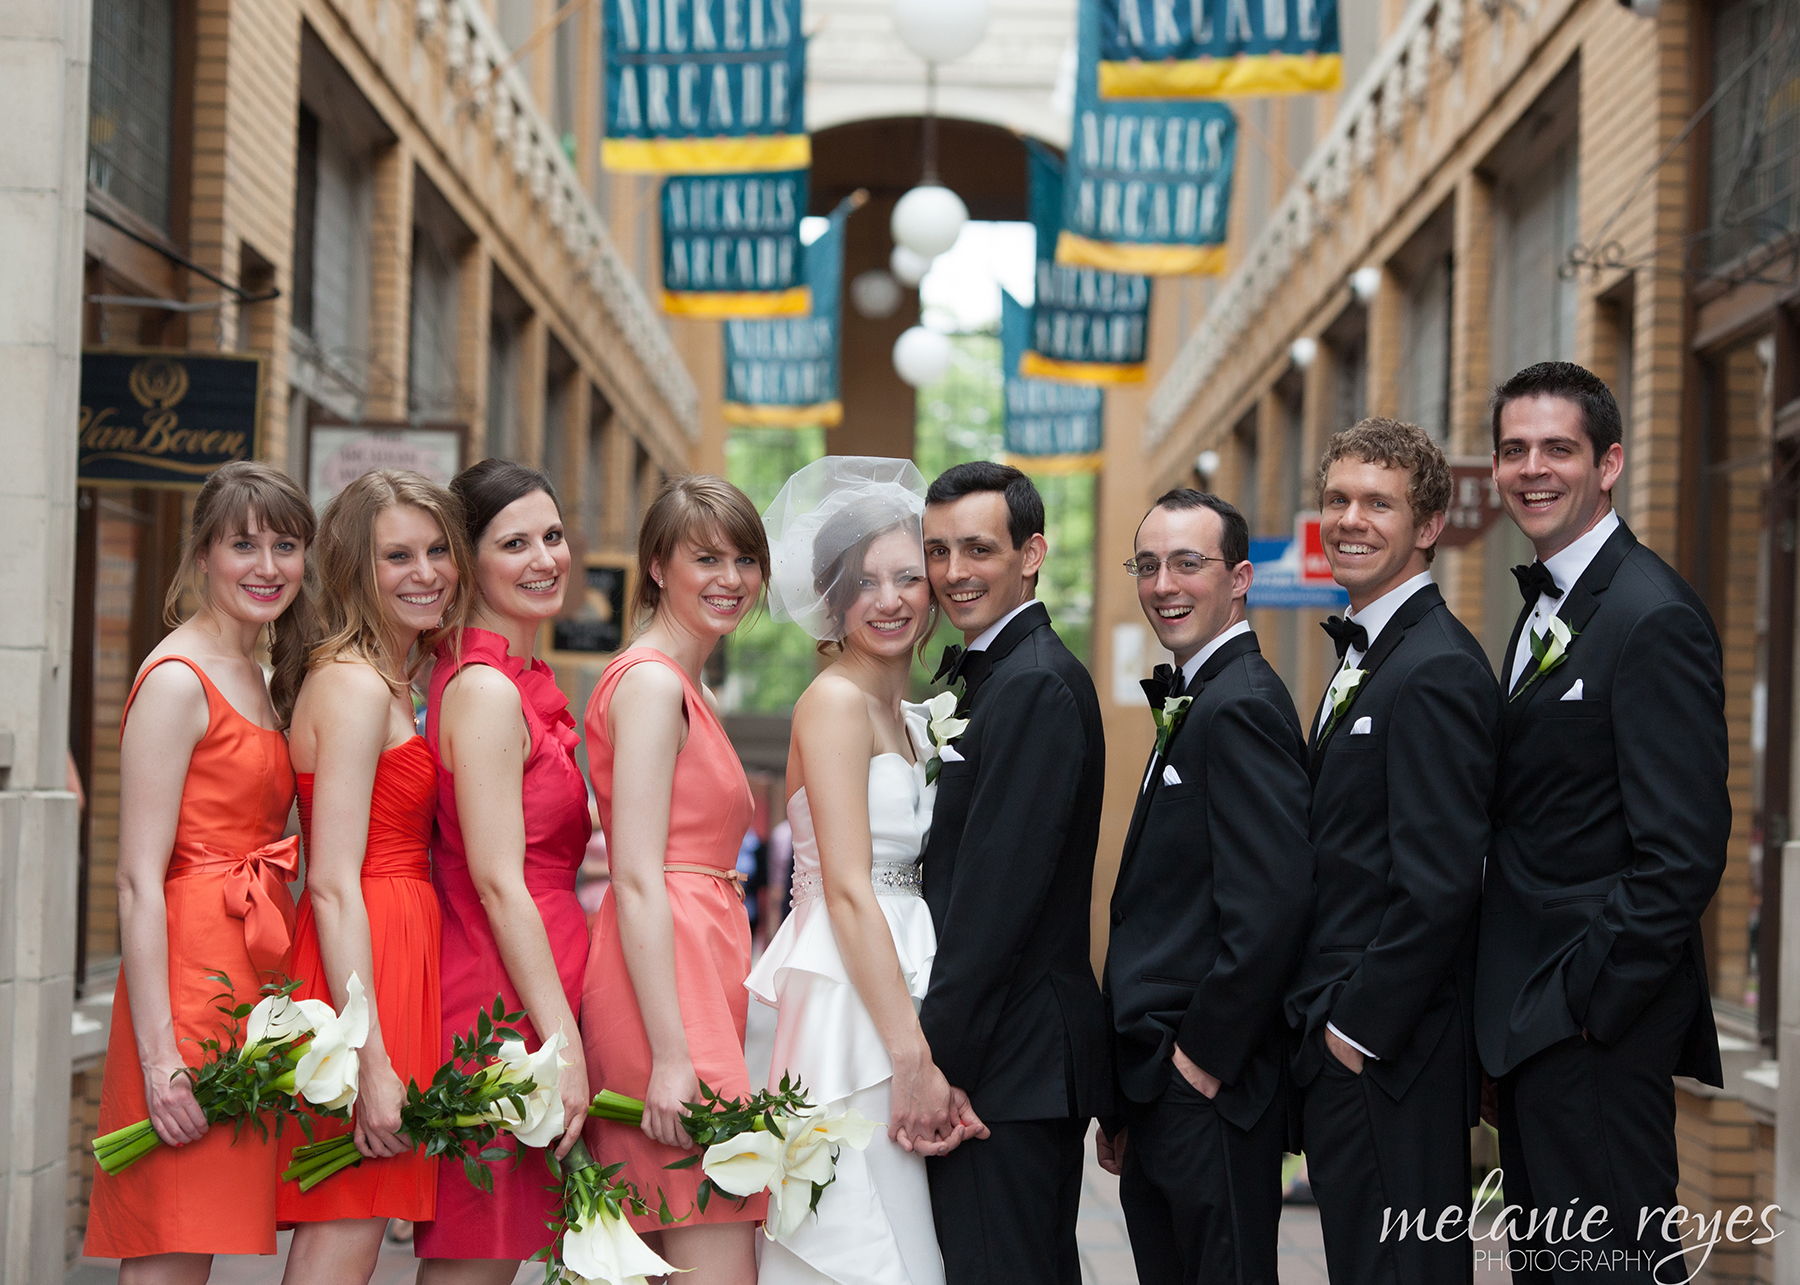 Bridal Party in Nichols Arcade